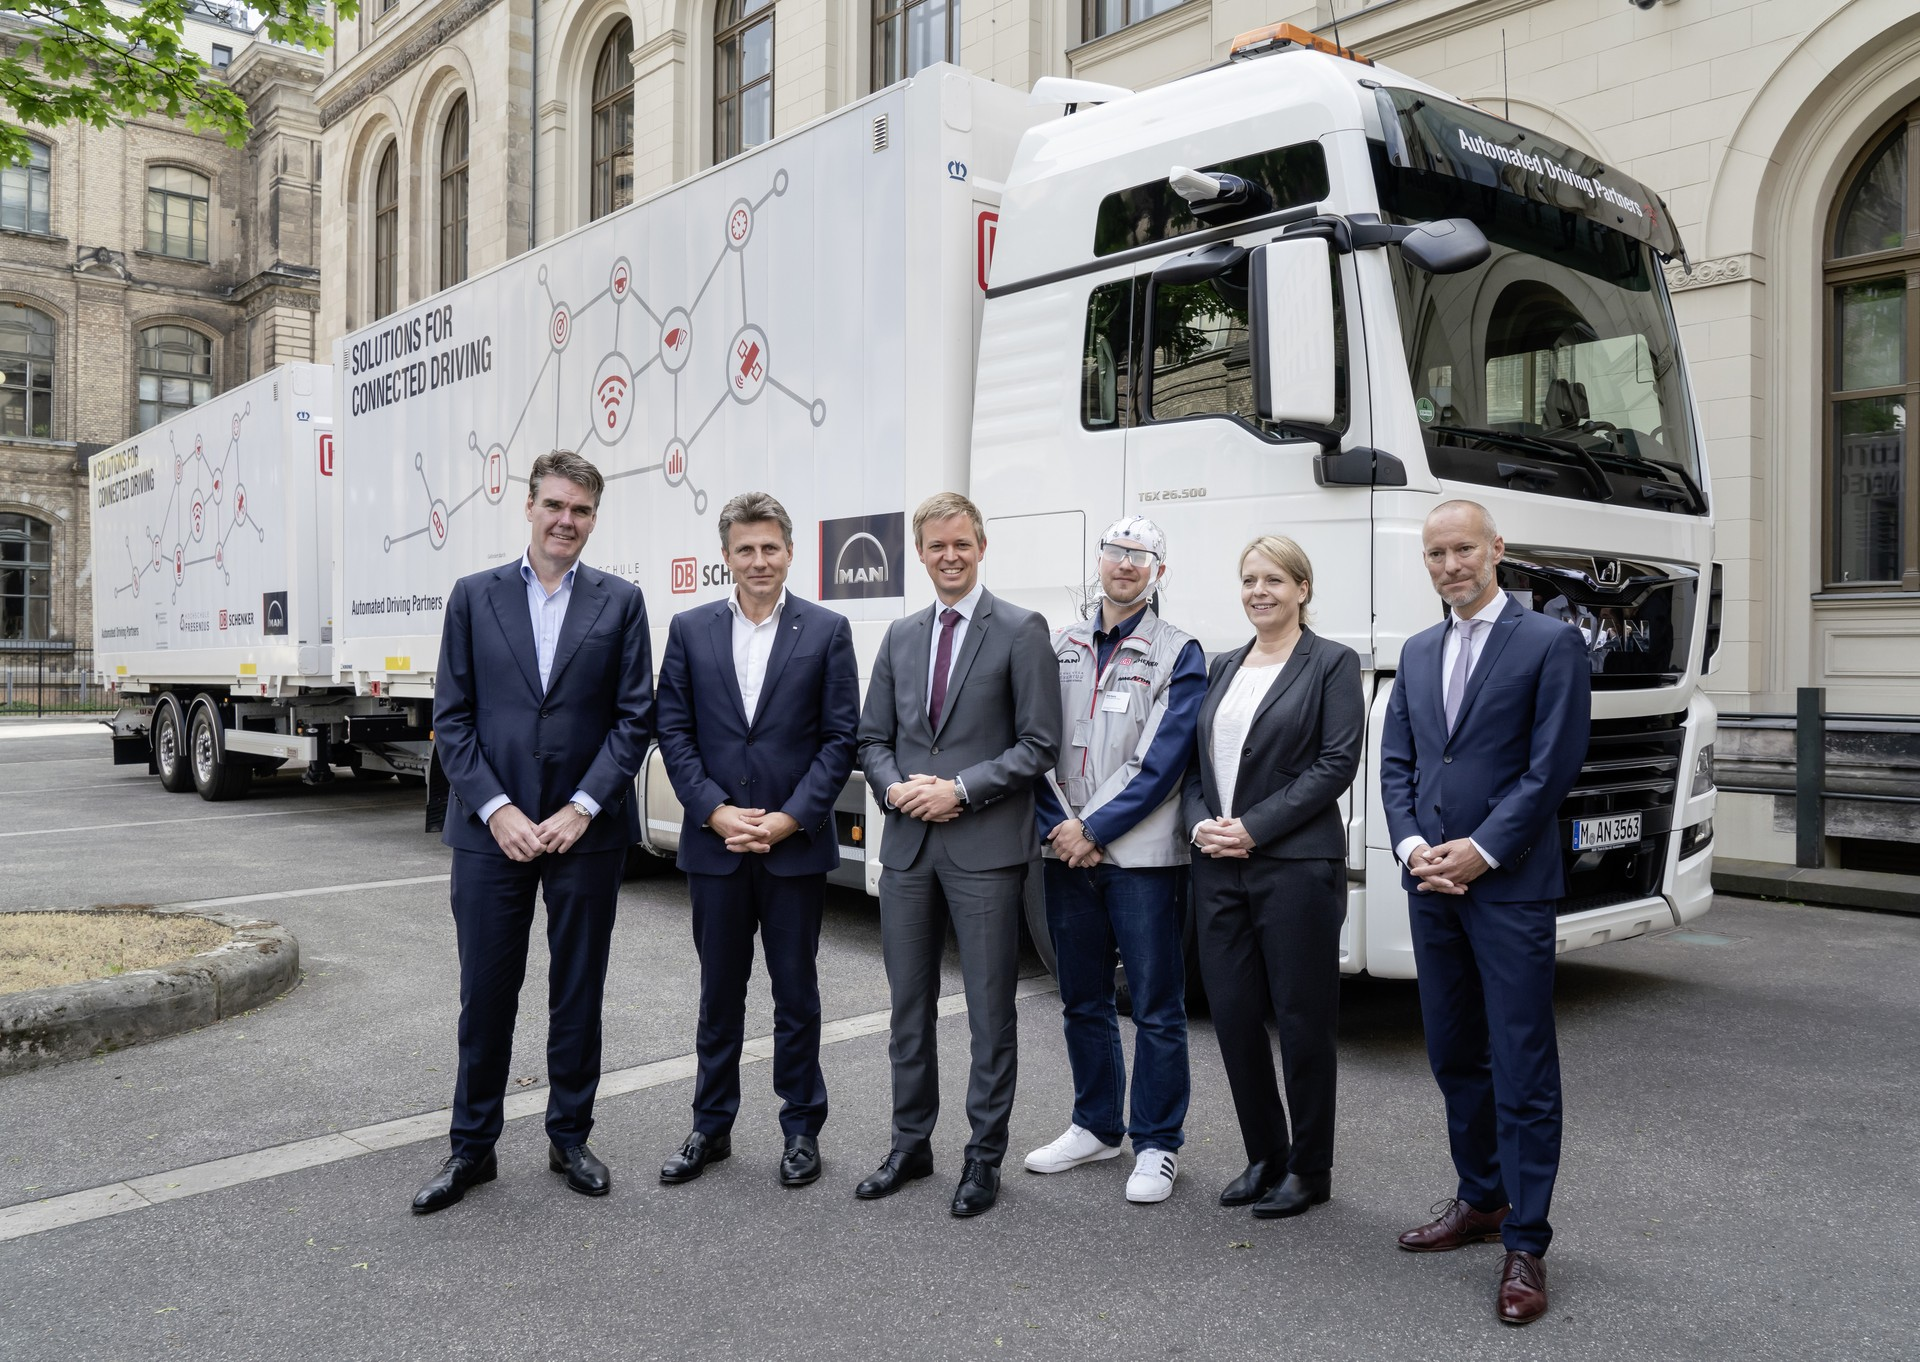 Platooning - Il progetto pilota condotto da DB Schenker, MAN Truck & Bus e Fresenius University of Applied Sciences